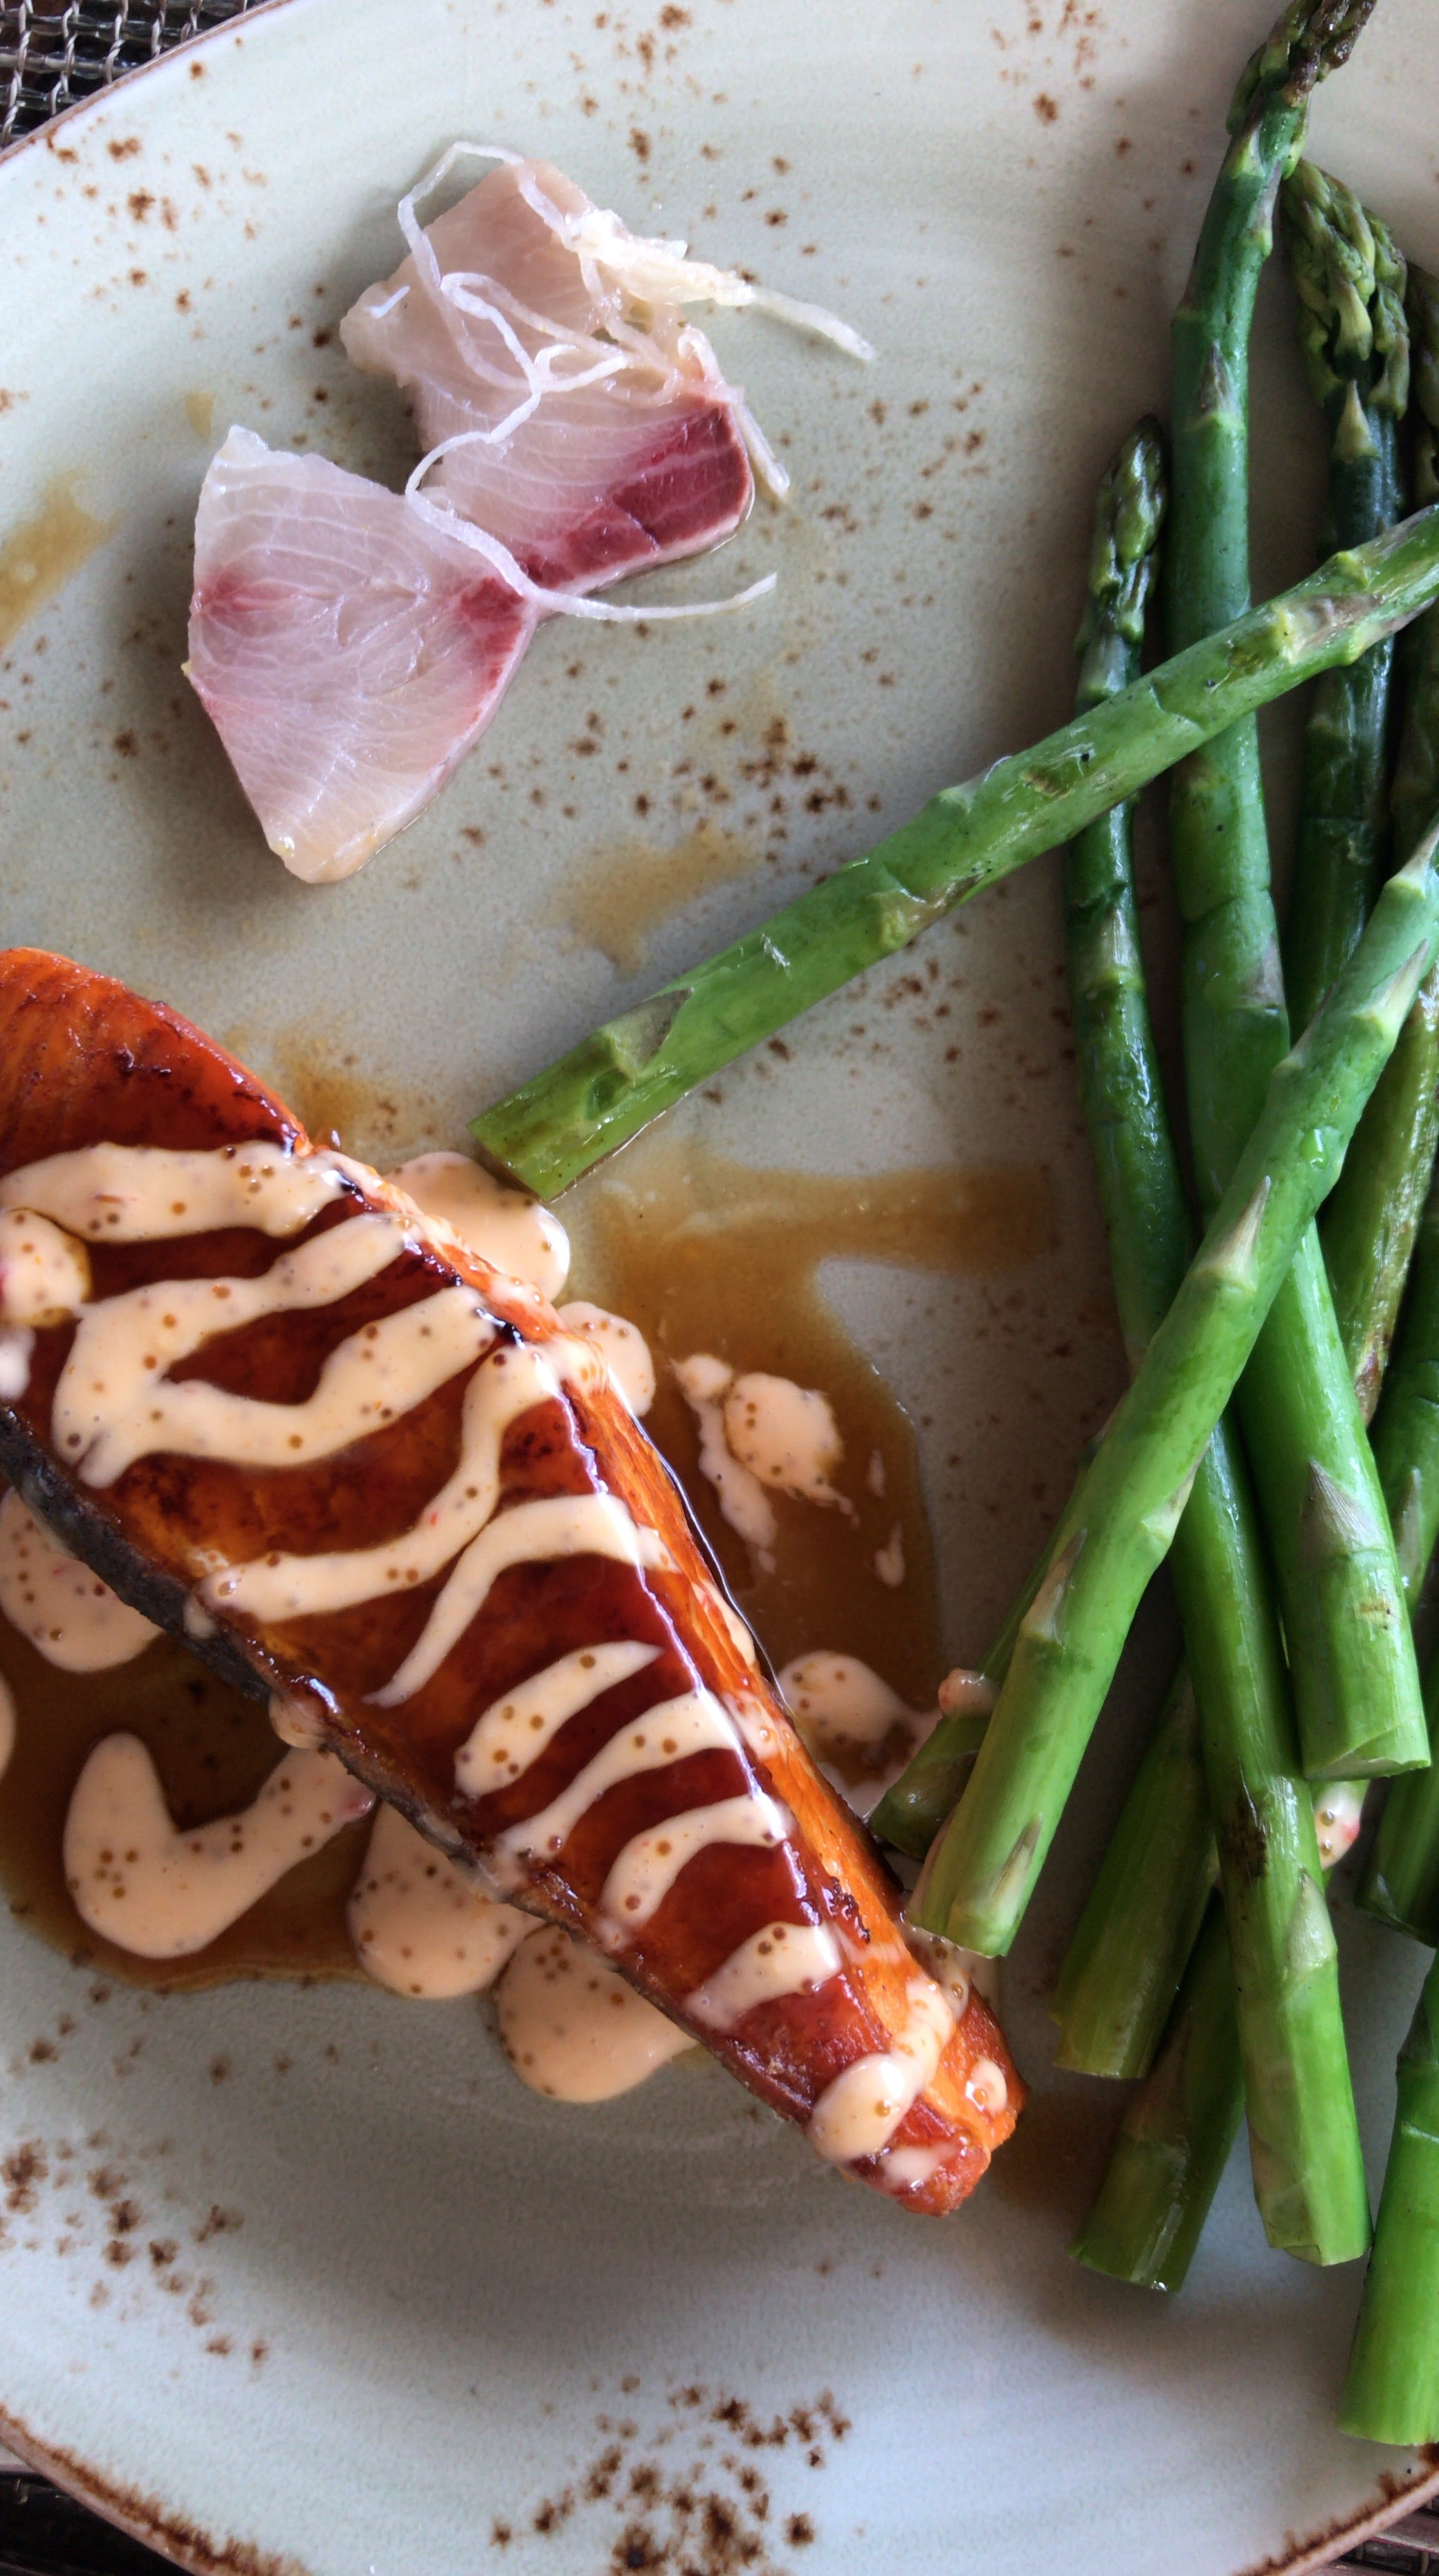 Eating At Halekulani's Restaurant House Without A Key, glazed salmon with asparagus